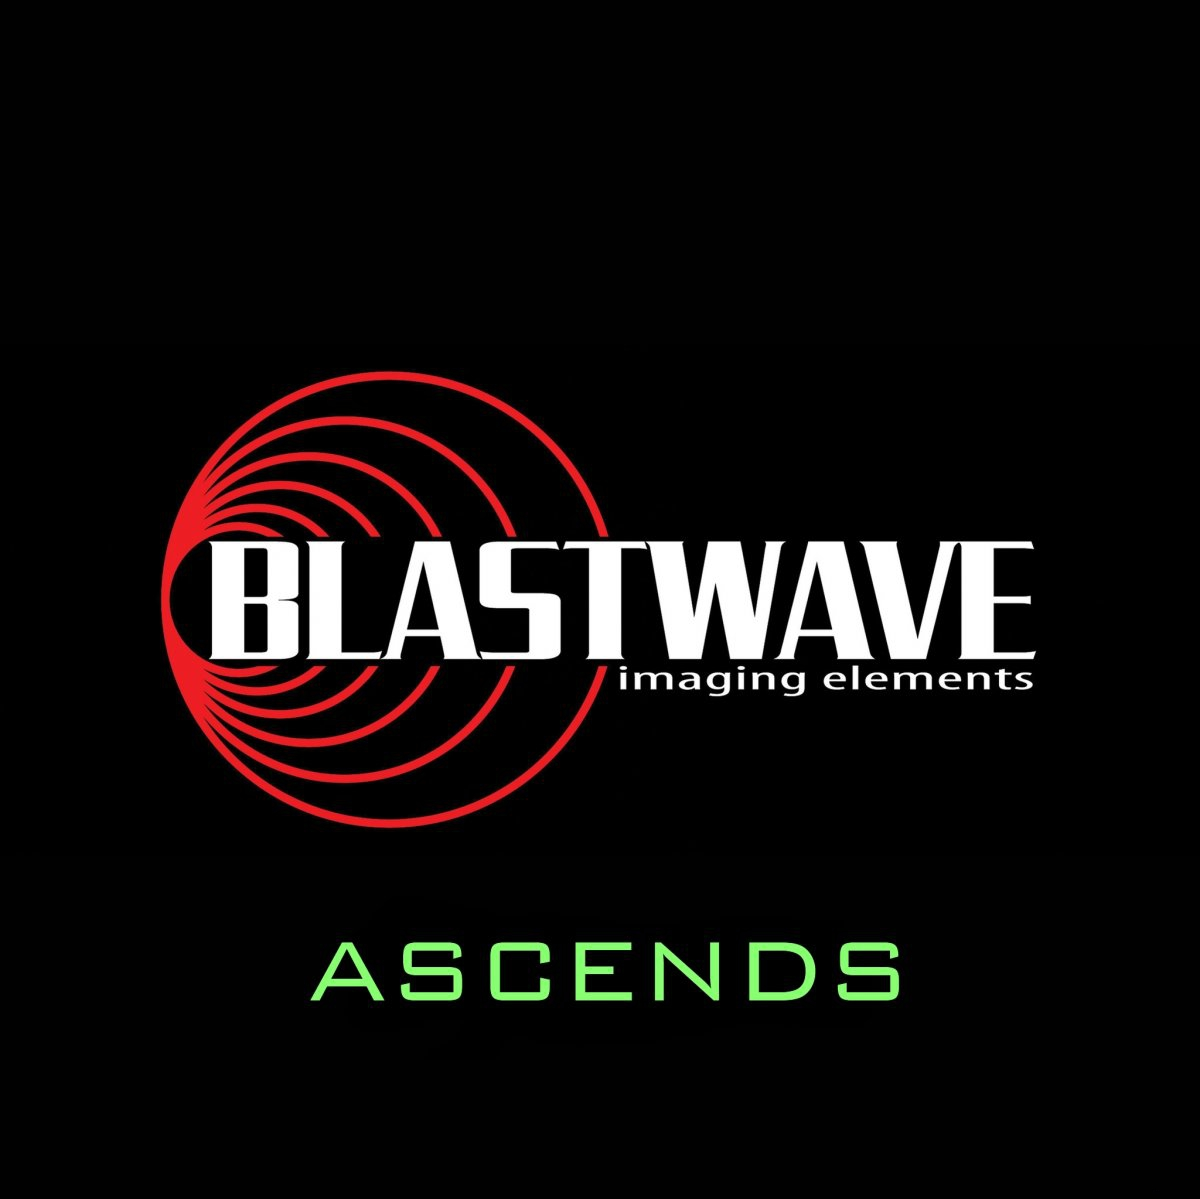 Blastwave Imaging Elements Ascends ACID WAV